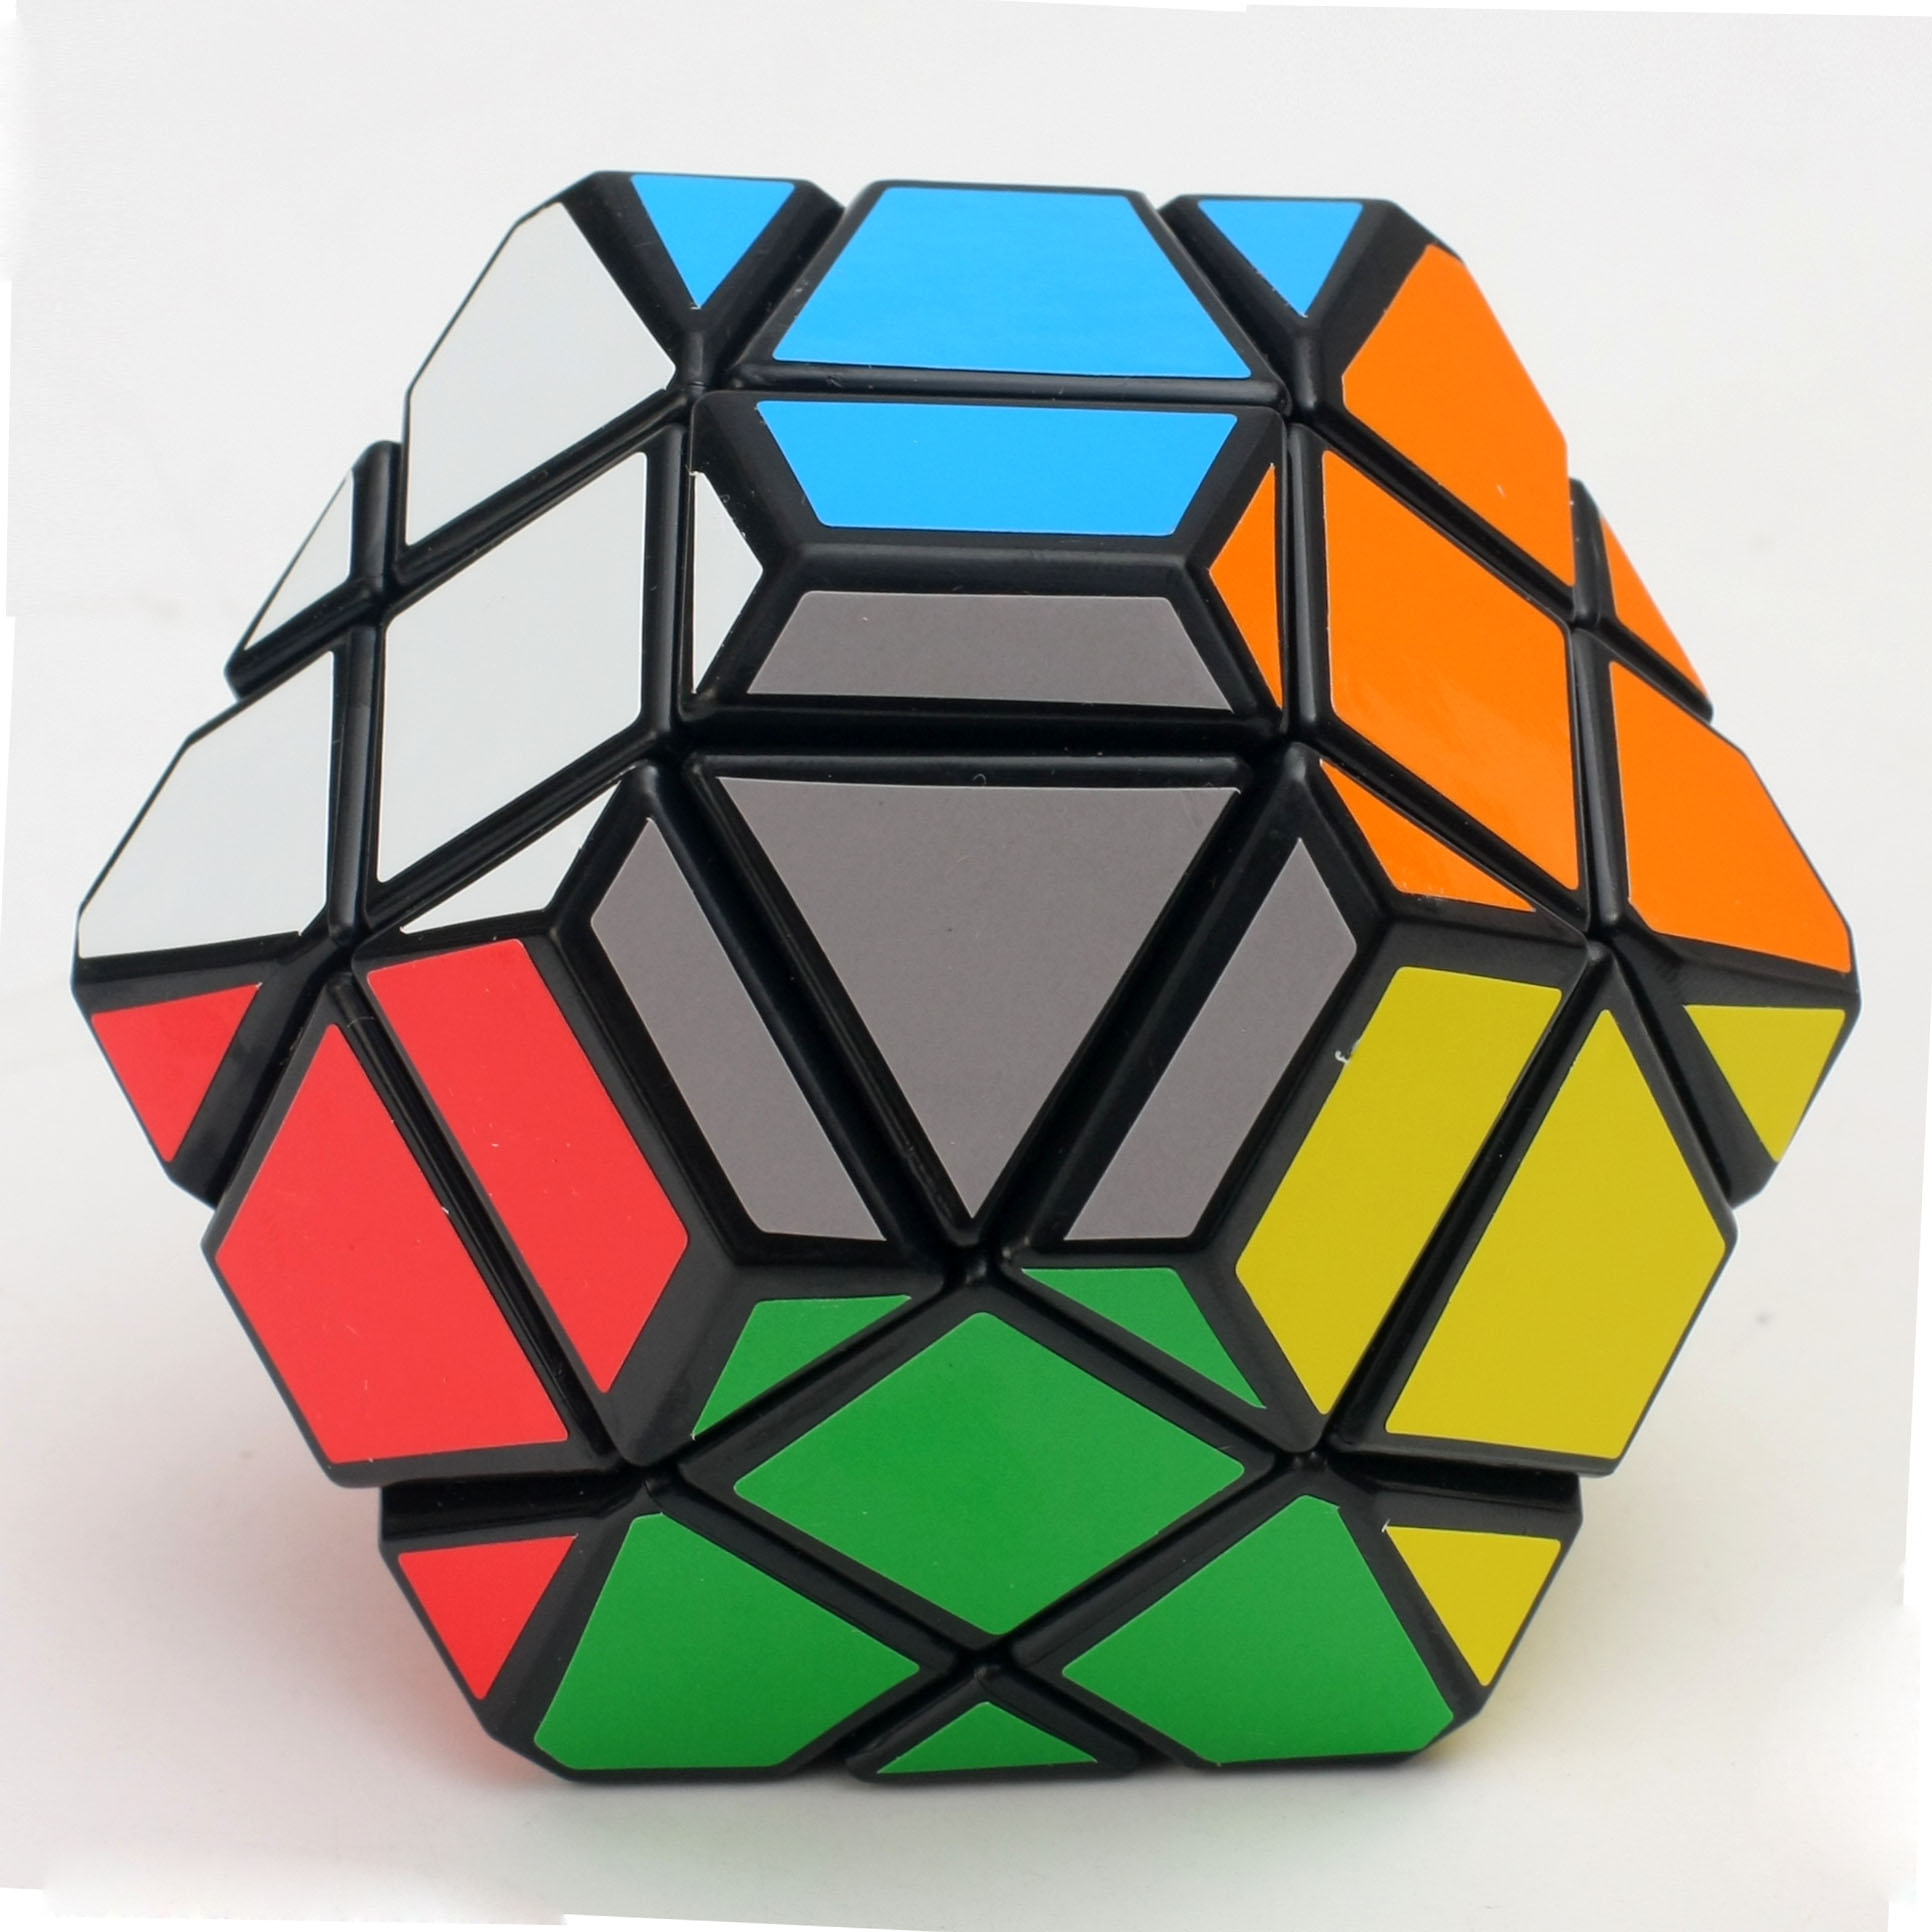 DianSheng UFO Magic Cube Collection Puzzle Cubo Magico Educational Toy Special Toys Brain Teaser Twisty Puzzle Cubo Magico